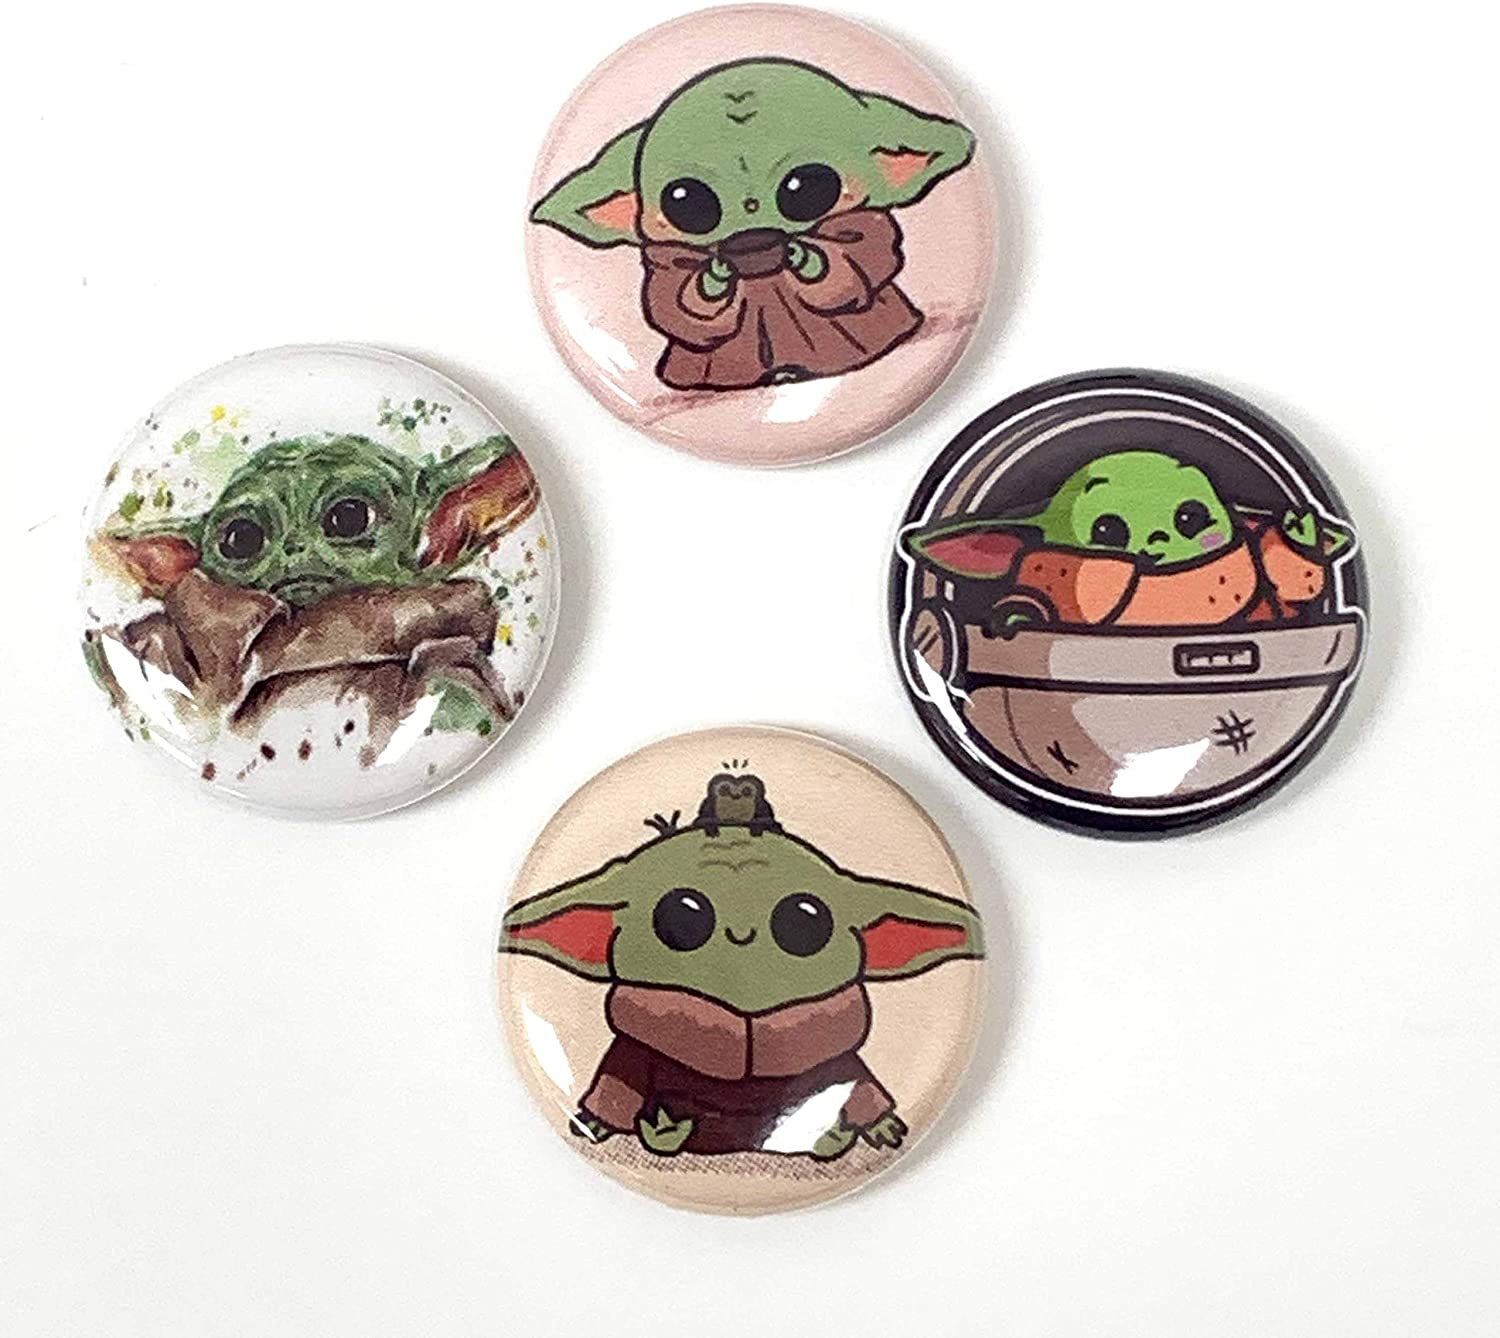 Baby Yoda Pin Button Lot List price Discount mail order - 1 Piece Size Mand inch Cute 4 Set